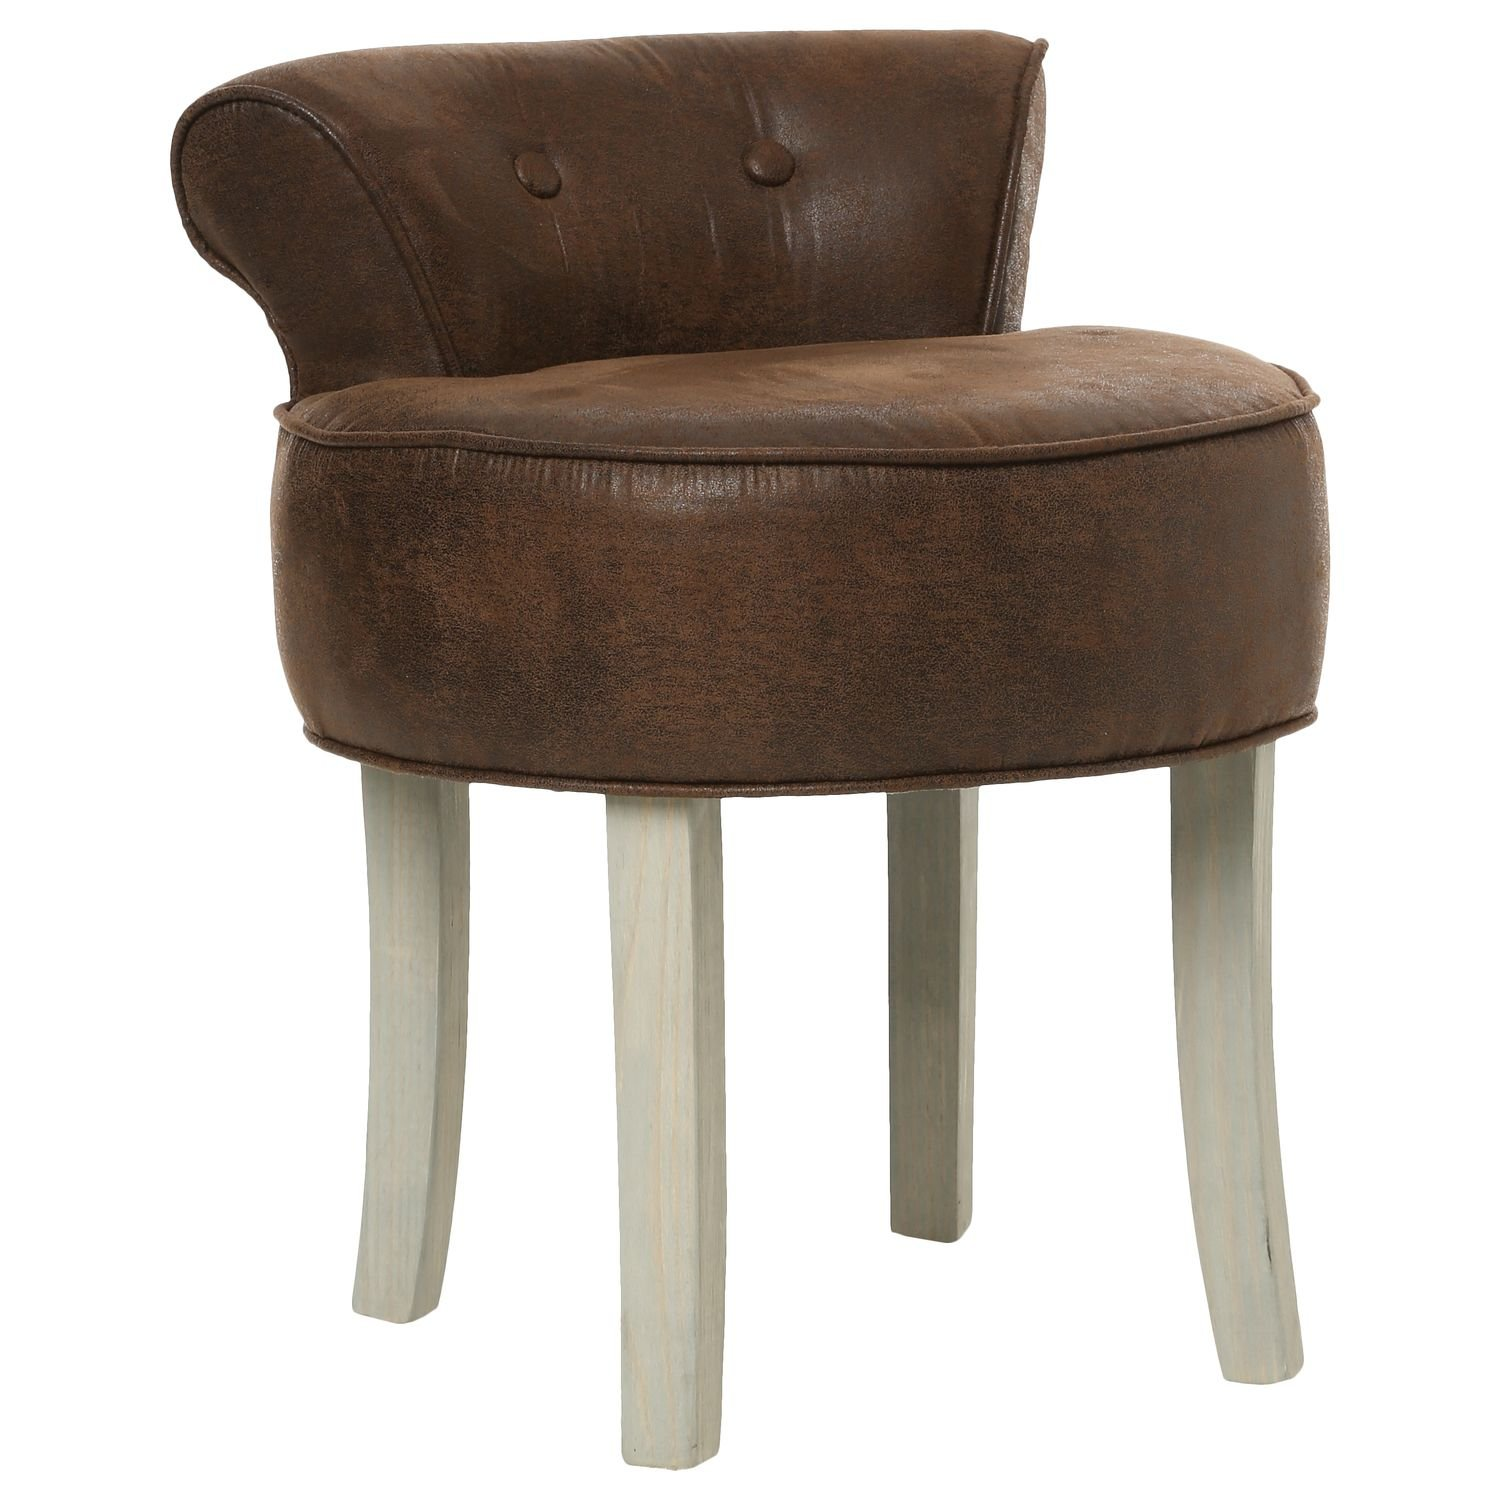 Atmosphera Vanity stool - AGED LEATHER look - Colour BROWN